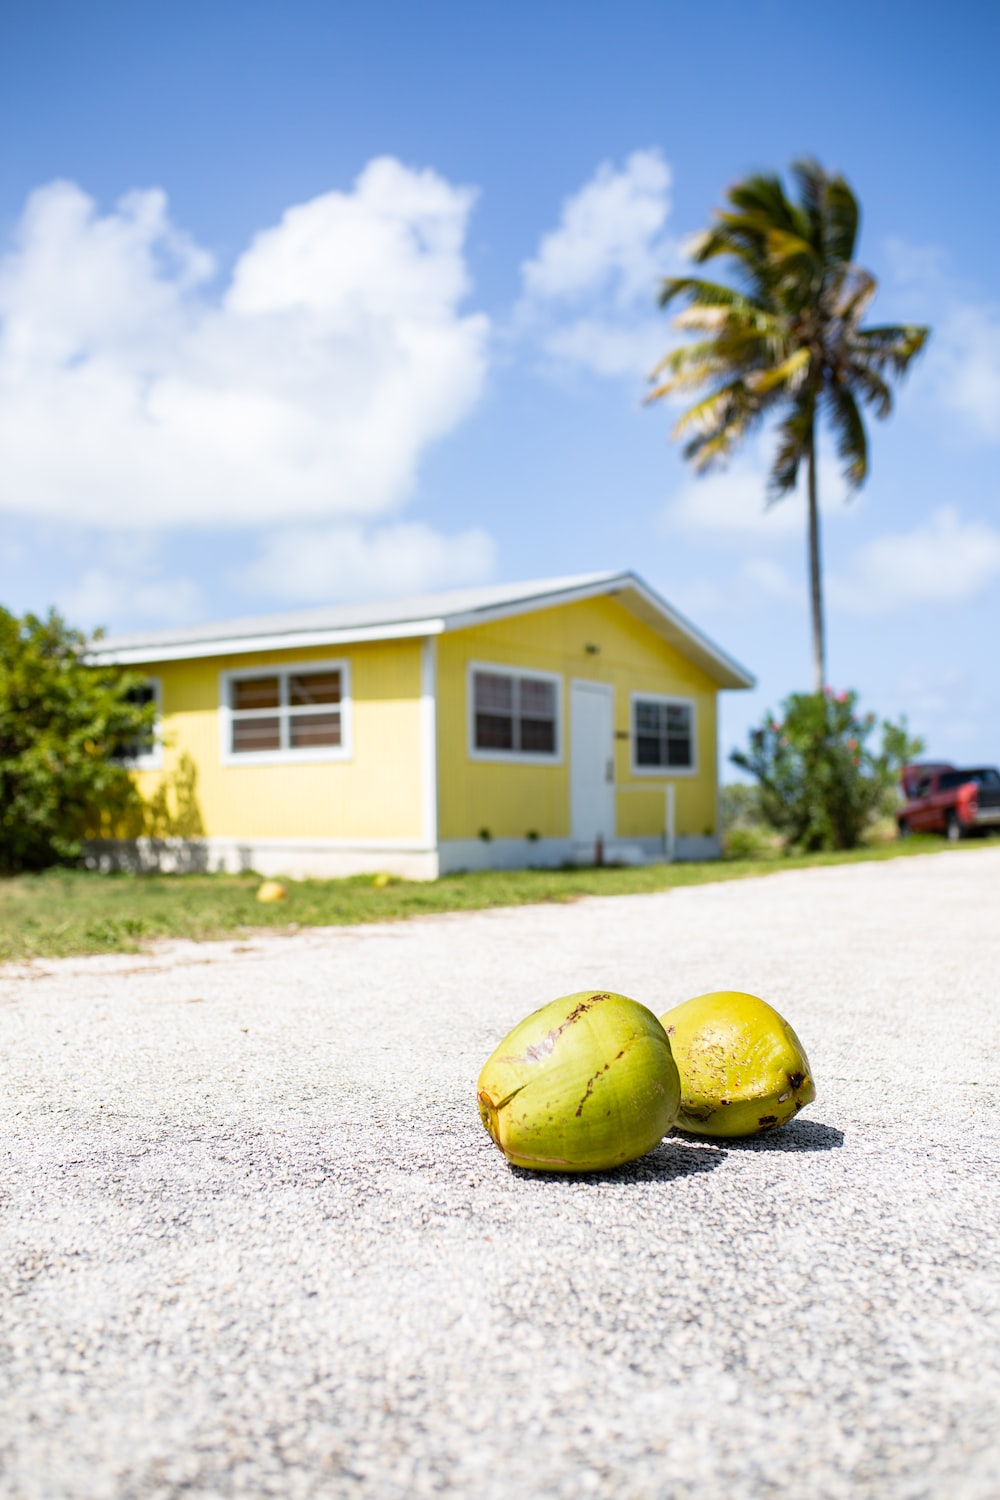 yellow and green round fruit on white sand during daytime